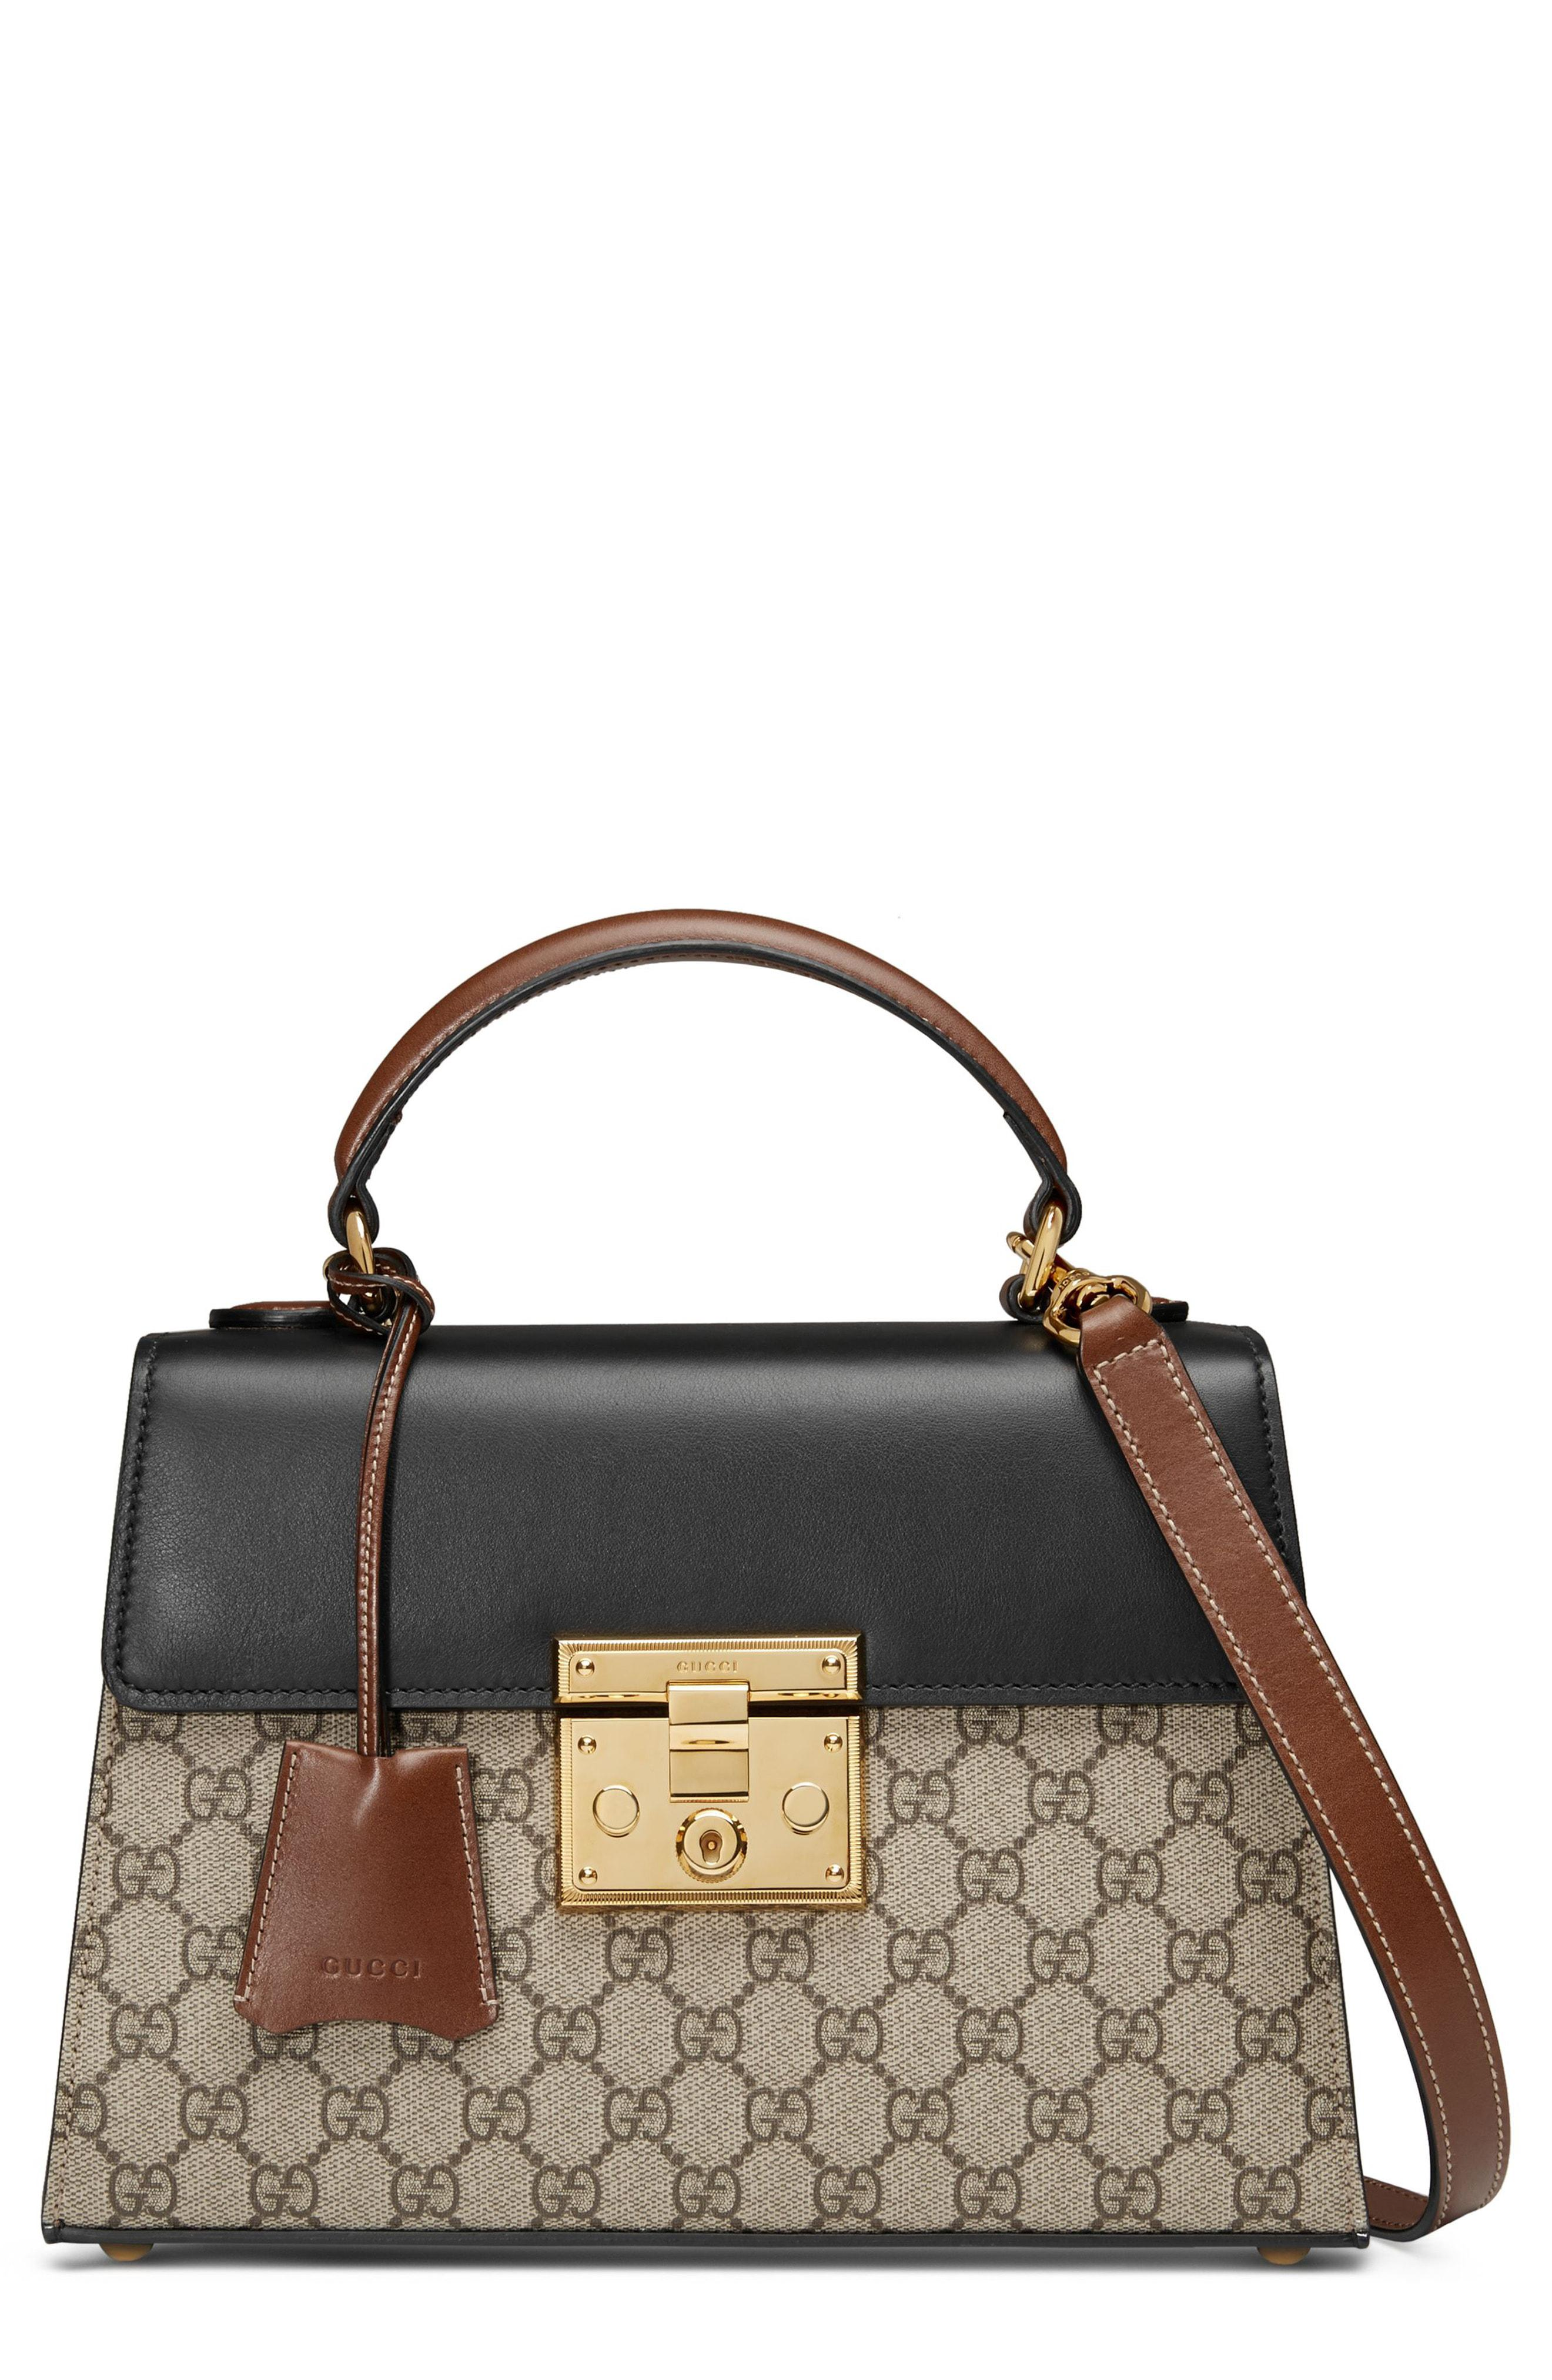 3bf28a16255 Gucci - Black Small Padlock Gg Supreme Canvas   Leather Top Handle Satchel  - - Lyst. View fullscreen